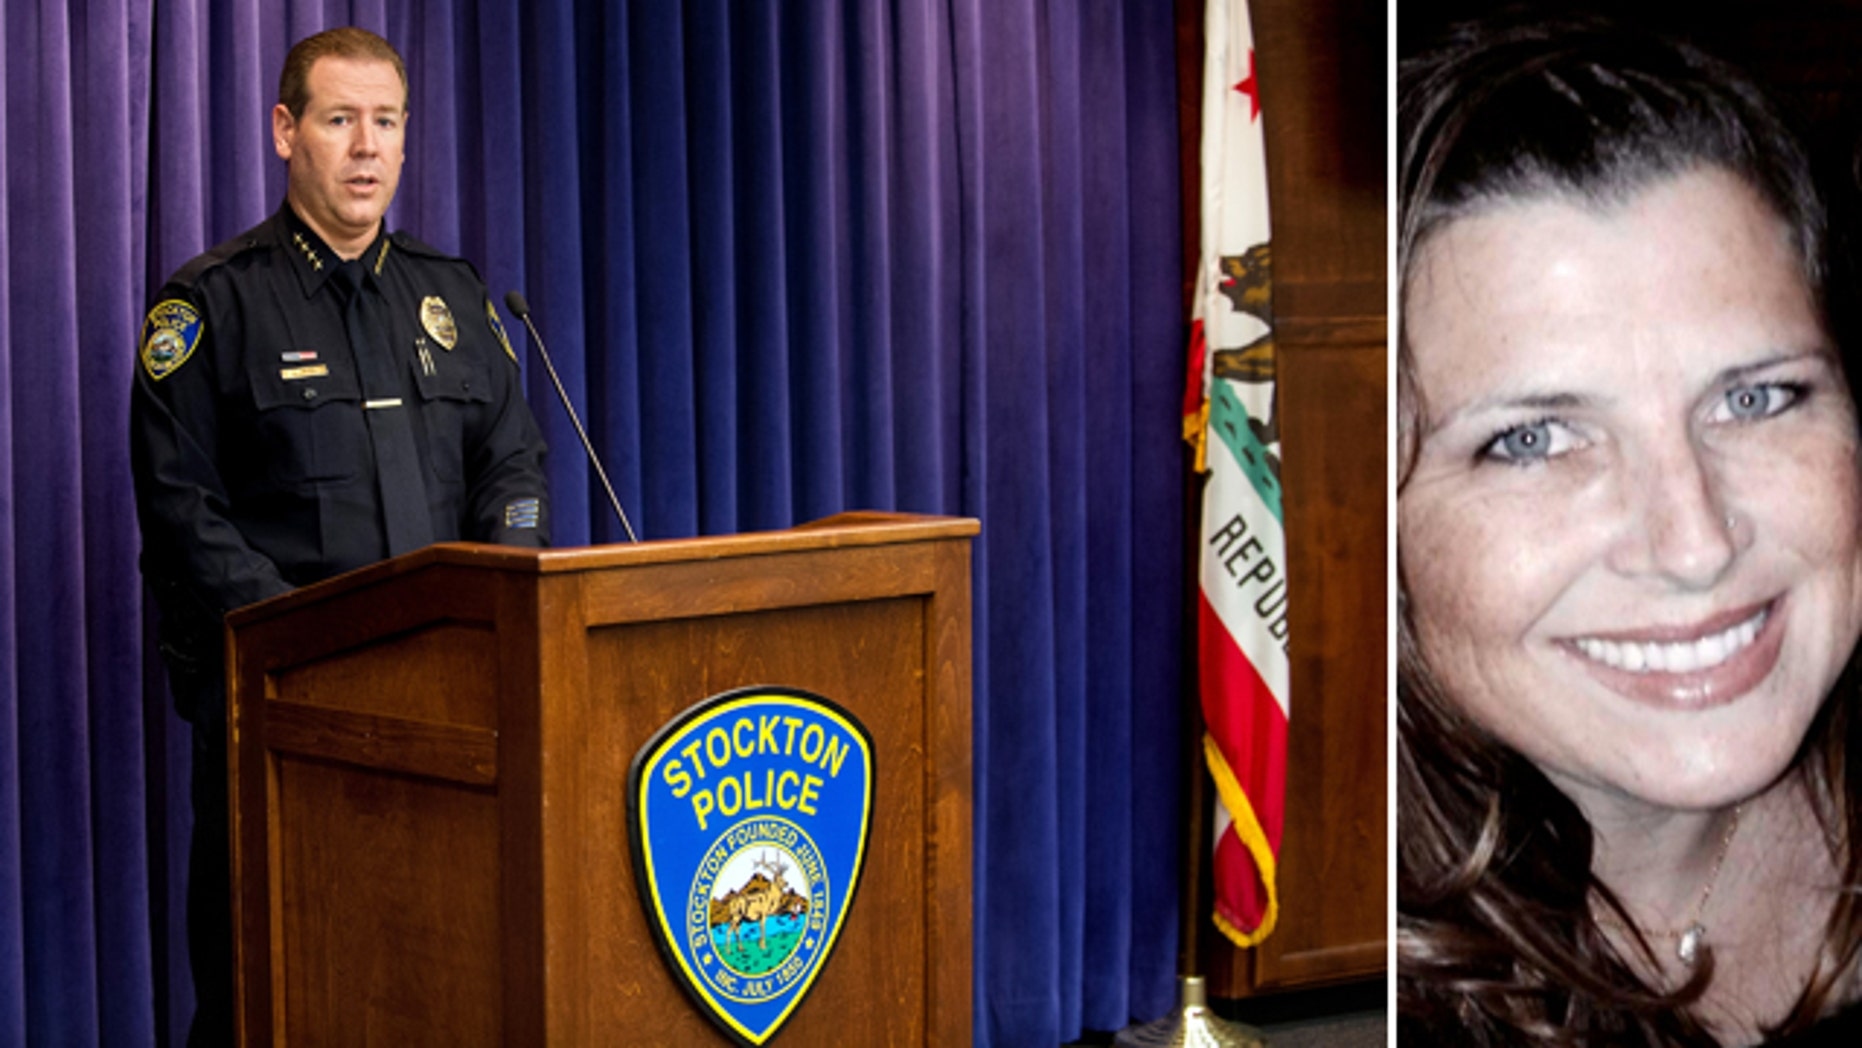 August 11, 2014: Stockton, Calif. Police Chief Eric Jones holds a press conference to release more information about the recent bank robbery and police shooting that ended with the death of two suspects and the hostage Misty Holt-Singh, pictured right. Police say Holt-Singh, 41 was killed by police, not the suspects. (AP Photo/The Record, Craig Sanders)